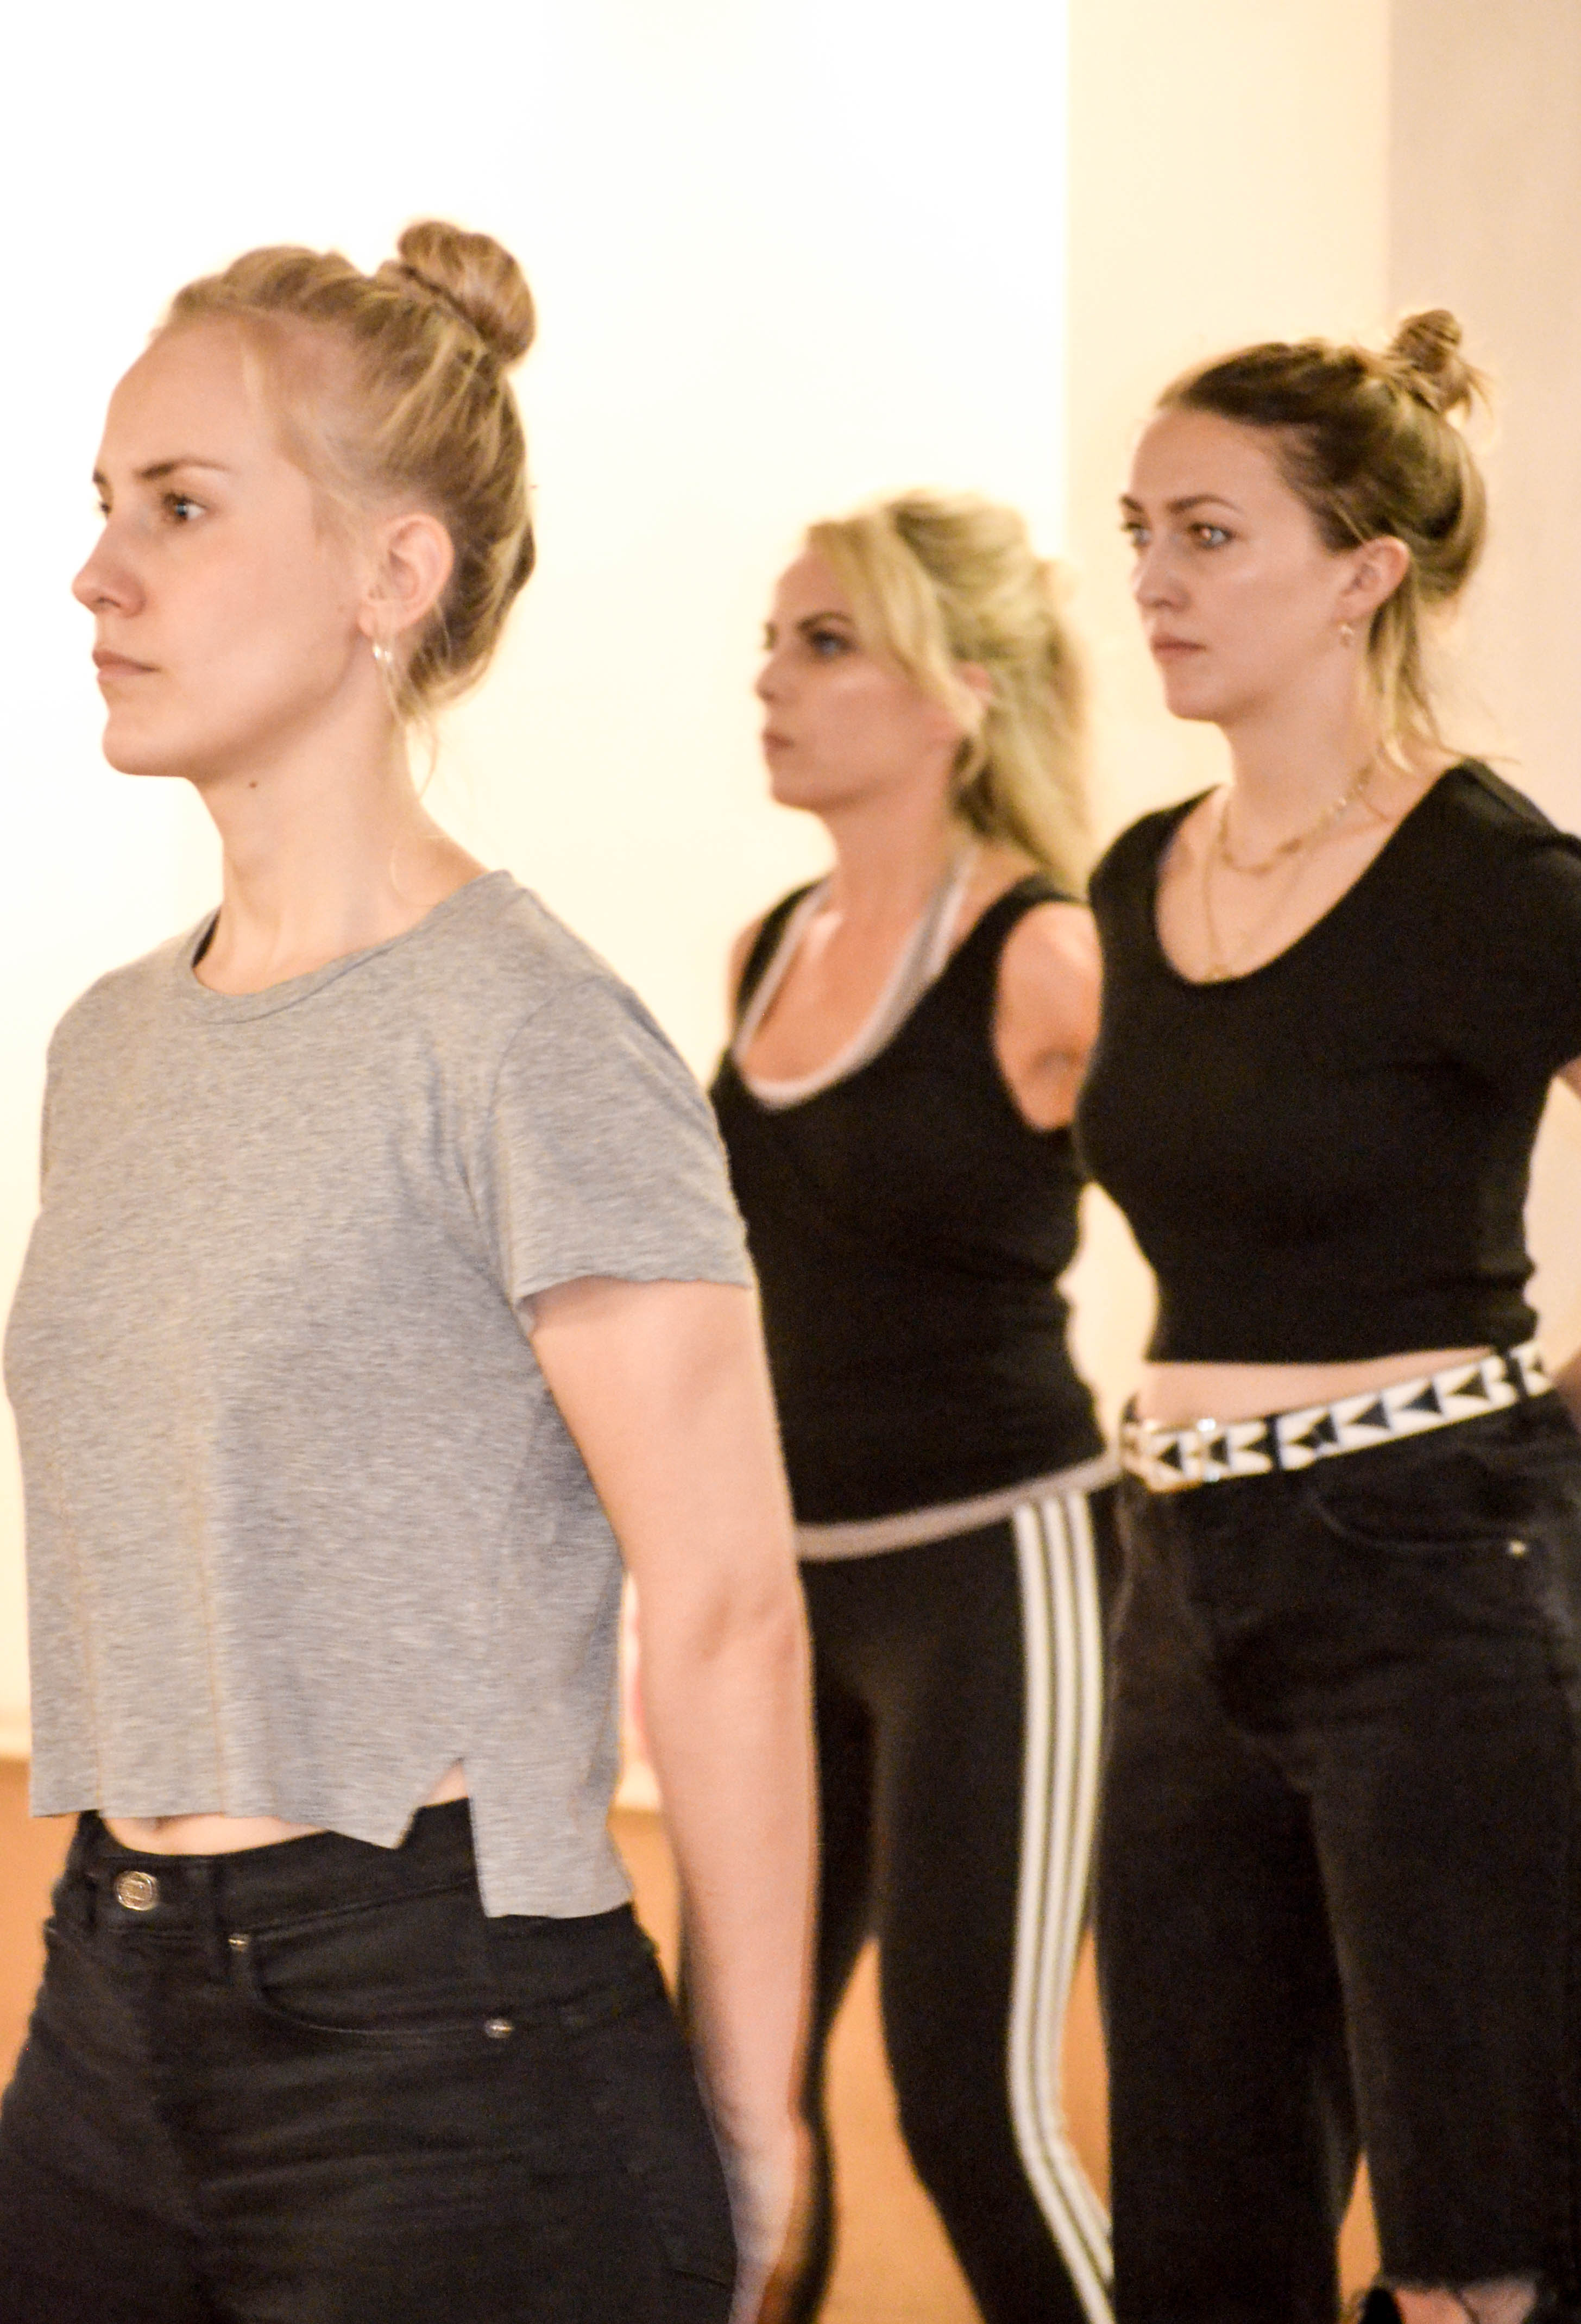 Soldier-on-dance rehearsals-at dance-attic-studio (1 of 1)-4